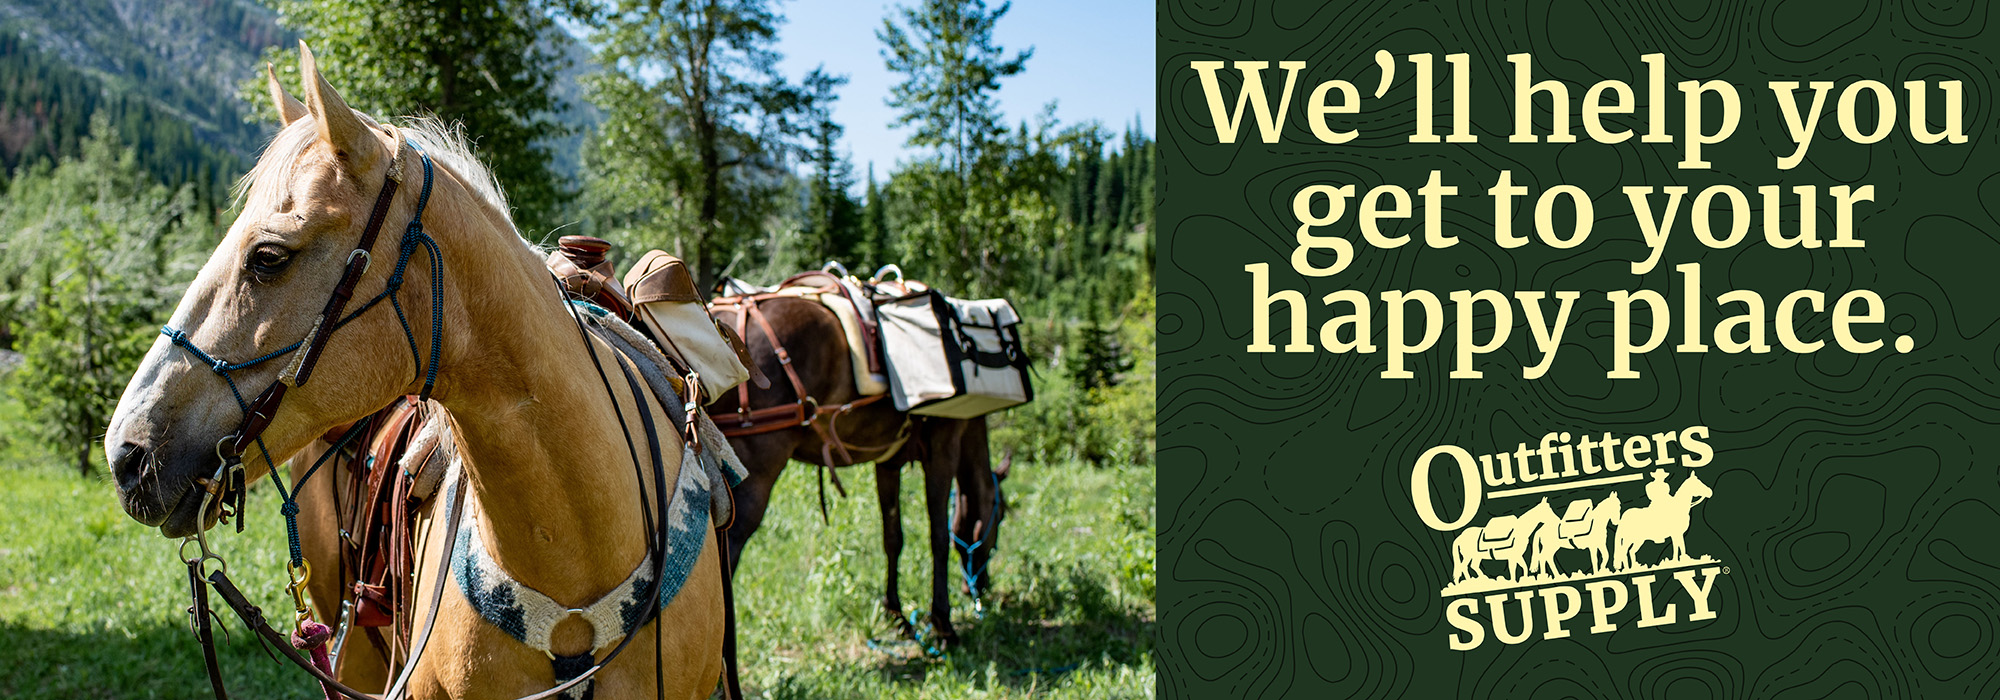 Outfitters Supply | Tack, Saddles, Horse Packing Gear, Trail Riding